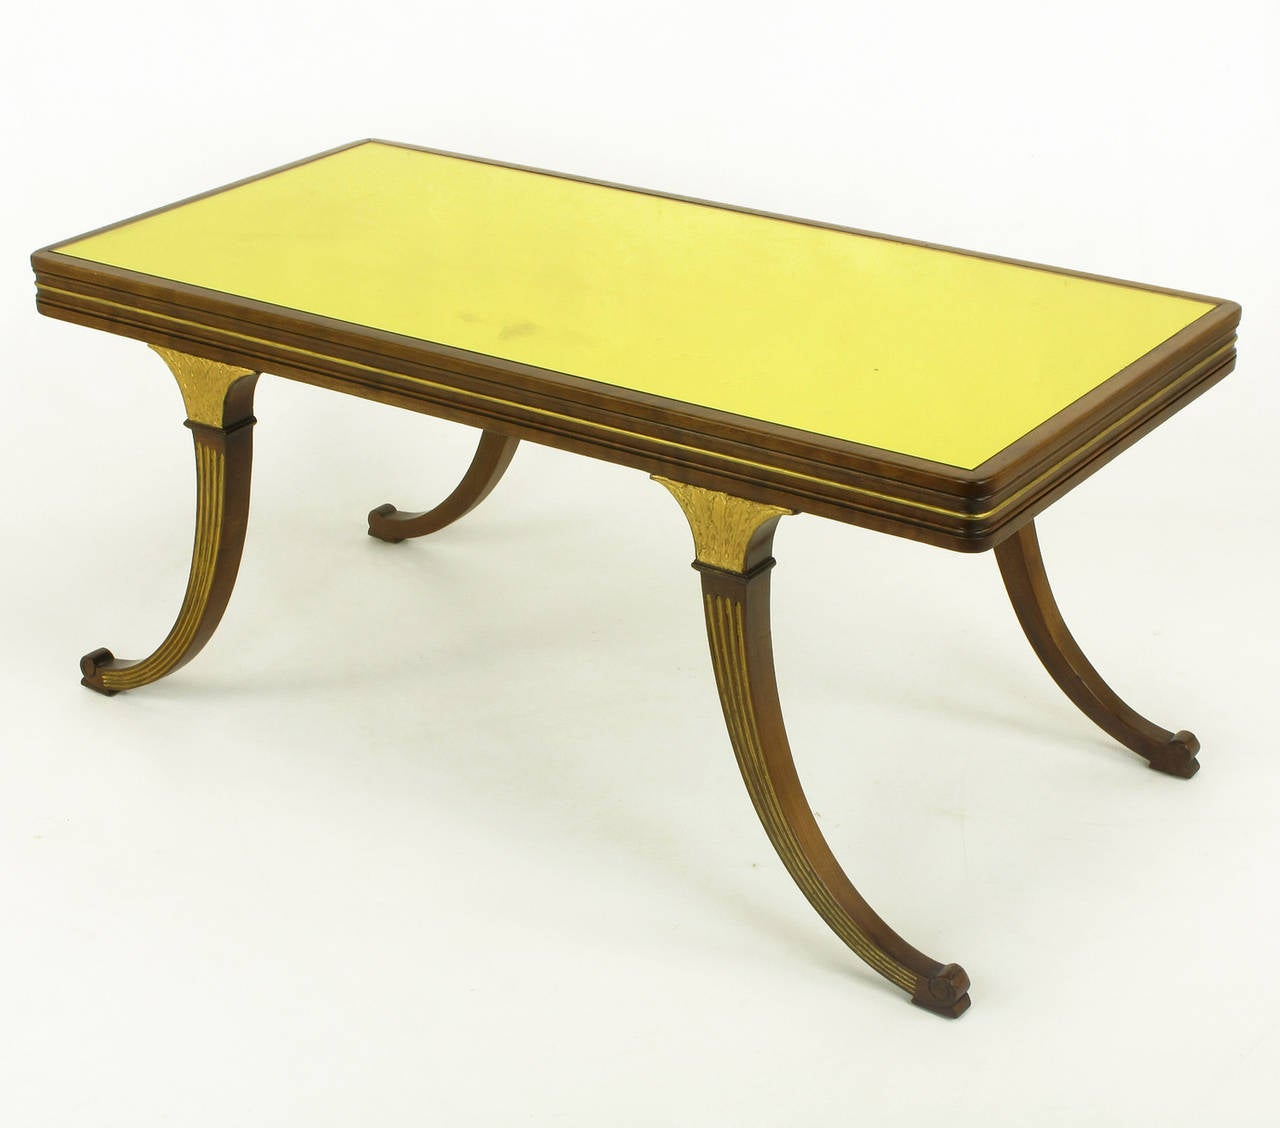 1900s parcel gilt and walnut empire coffee table with gold mirror top